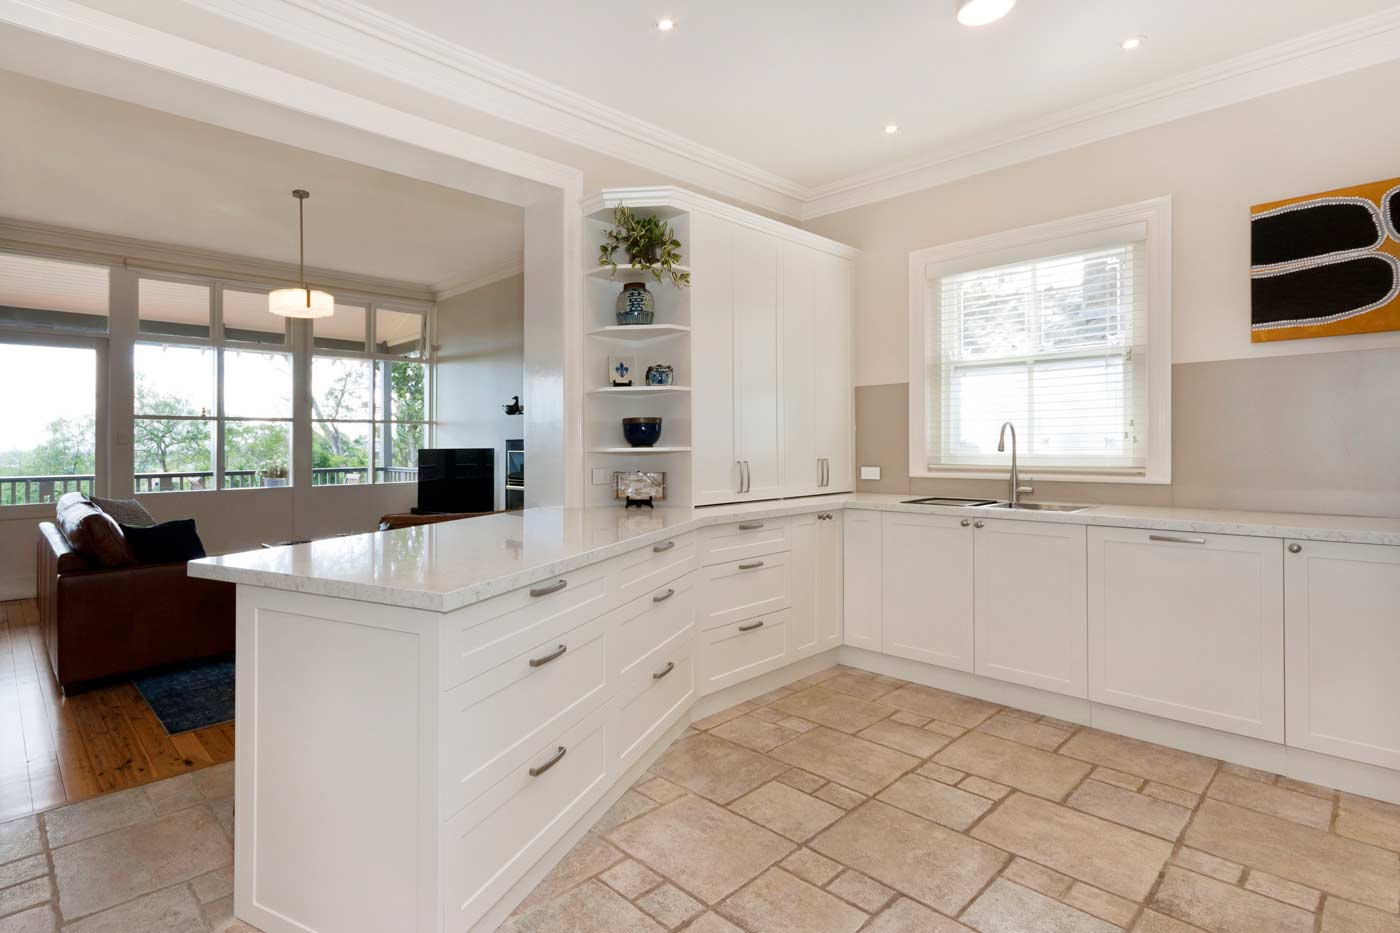 Hamptons style kitchen design featuring Miele appliances, Dulux polyurethane shaker doors in Whisper White & Silestone quartz bench top in Blanco Orion.